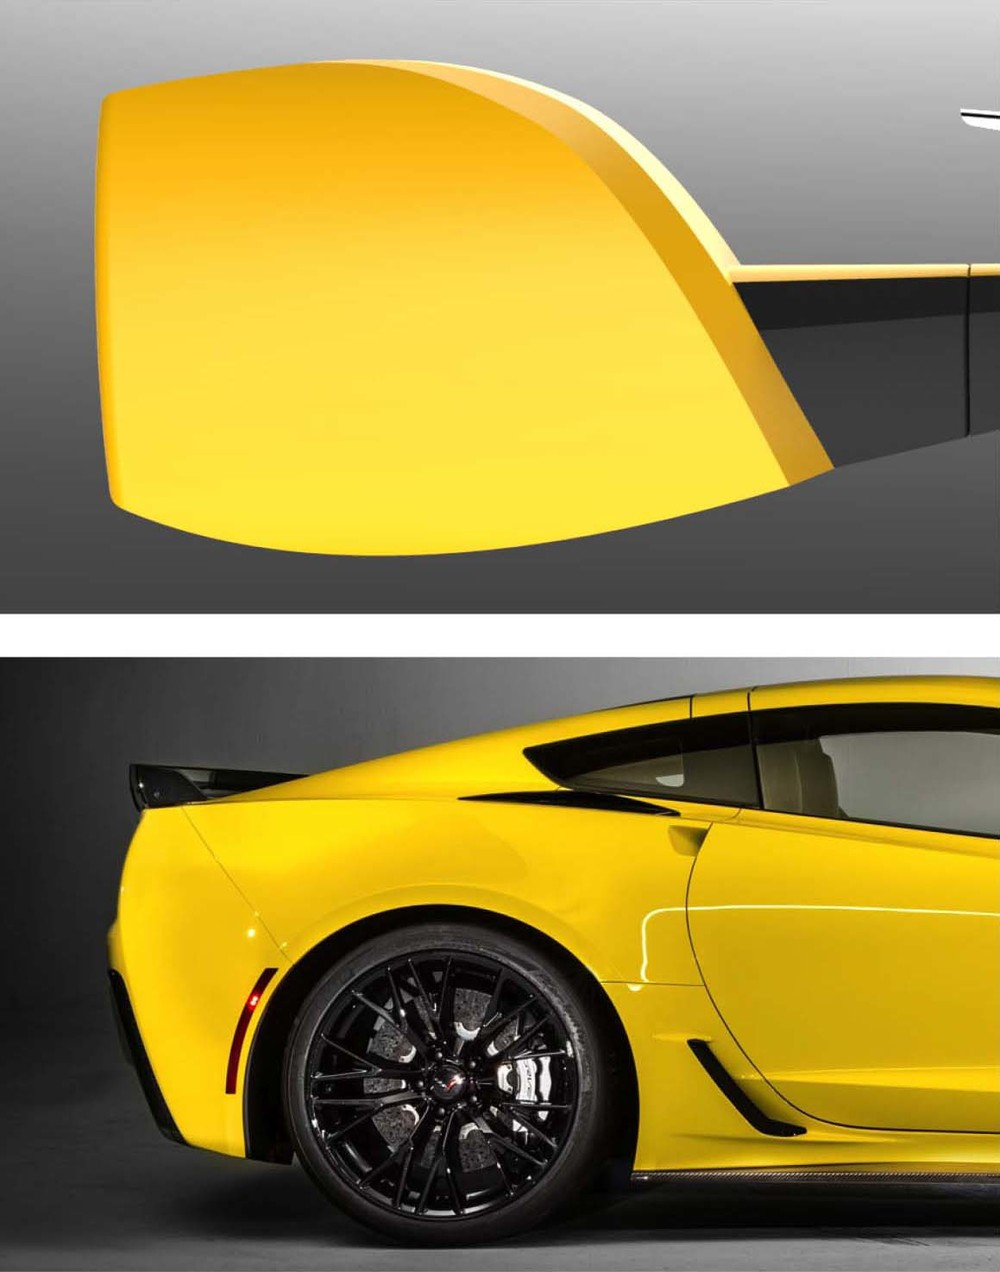 The hip profile differentiate the Corvette from other sports cars. A crisp chamfer references the sharp crease language on the hood.